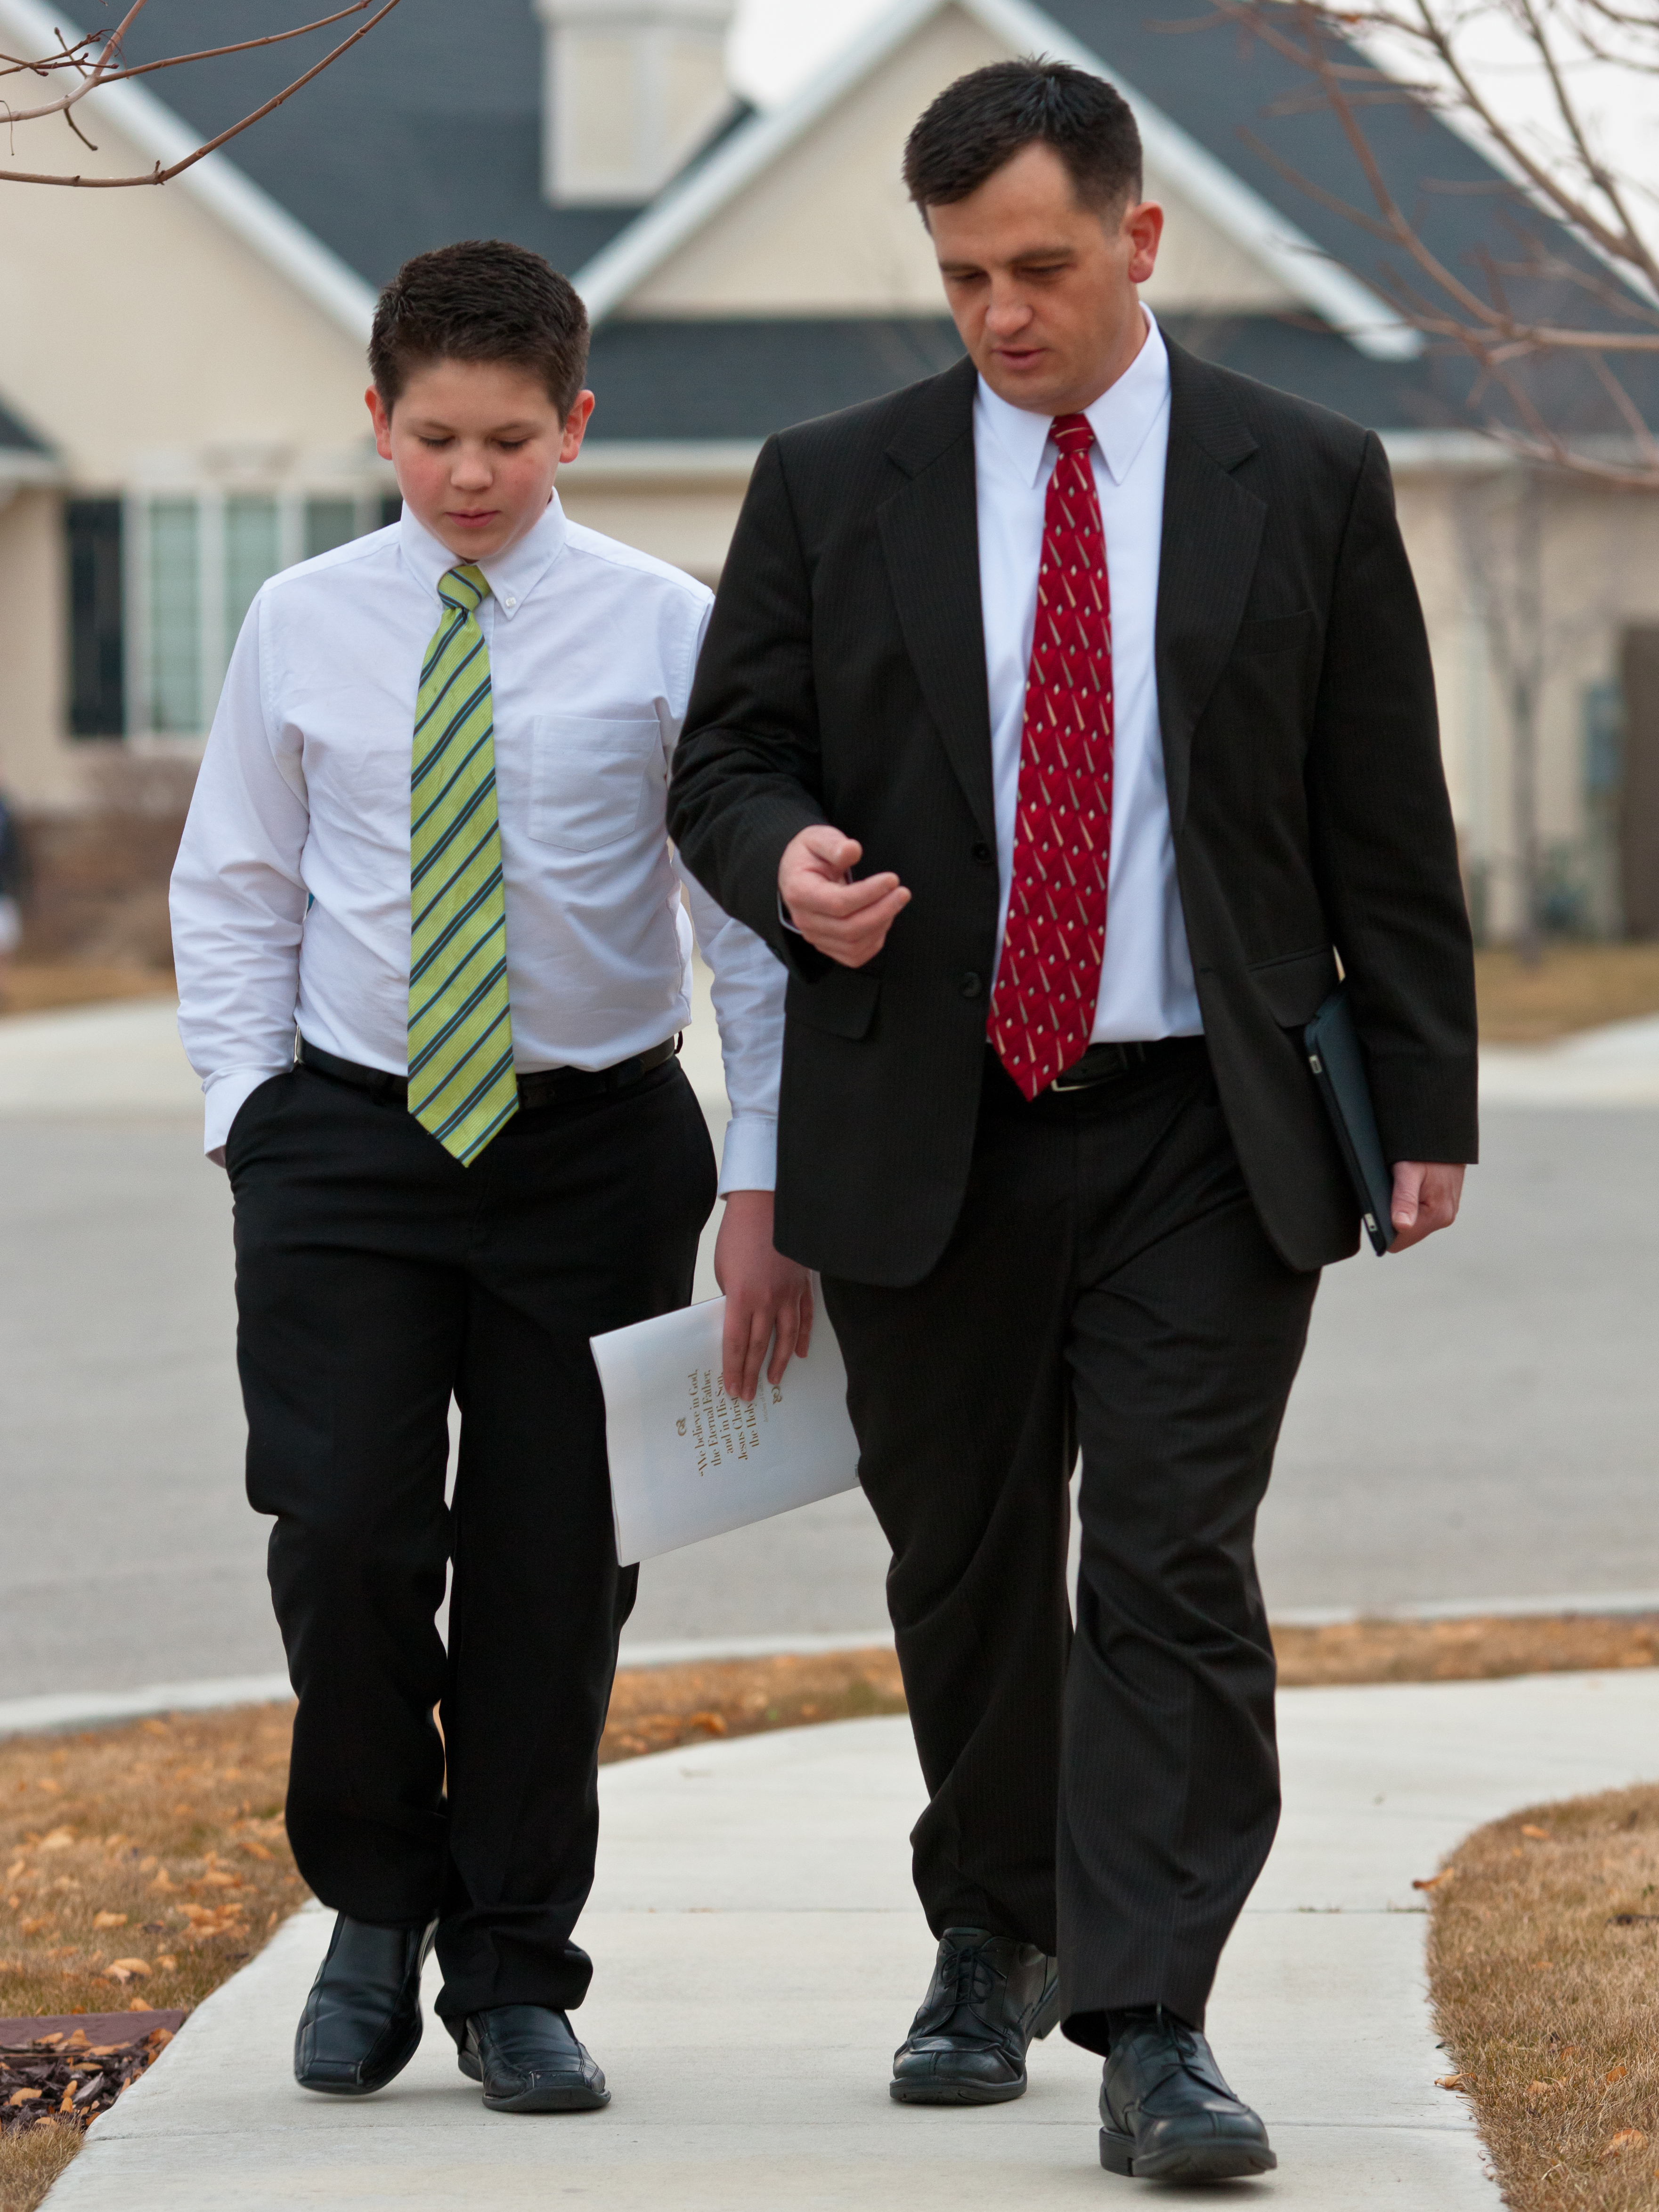 The bishop talks and walks with a young man. As President Russell M. Nelson emphasized in the October general conference, the primary responsibility of a bishop is to care for the youth.